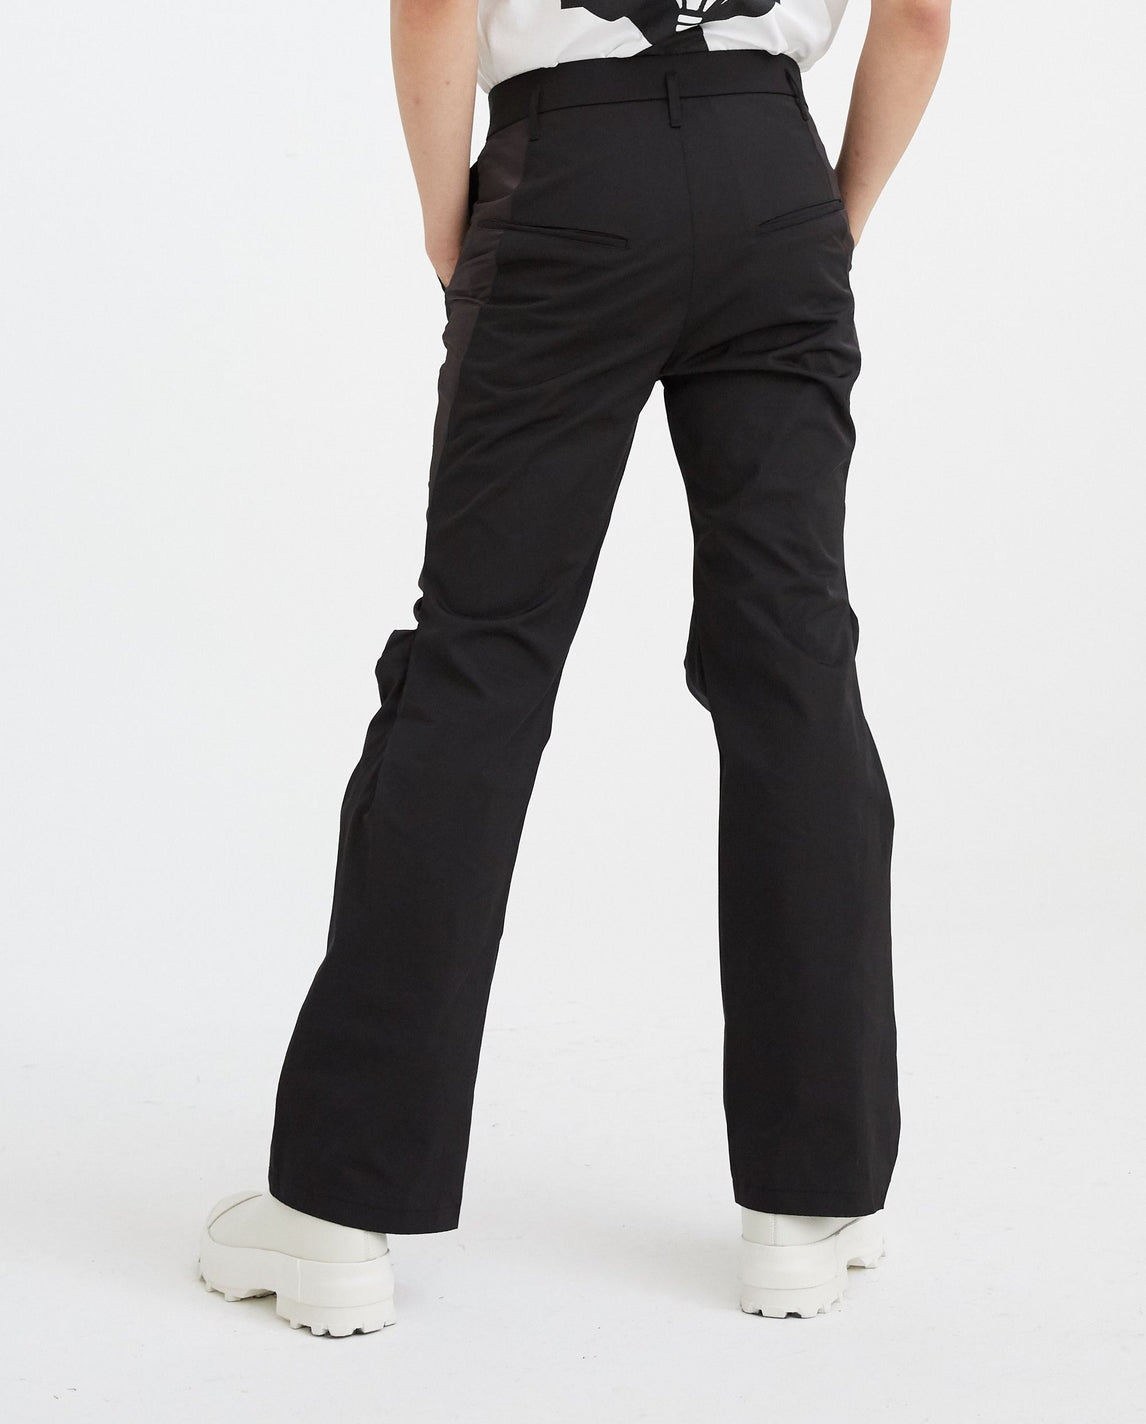 3.1 Technical Pants Right - Black MENS POST ARCHIVE FACTION